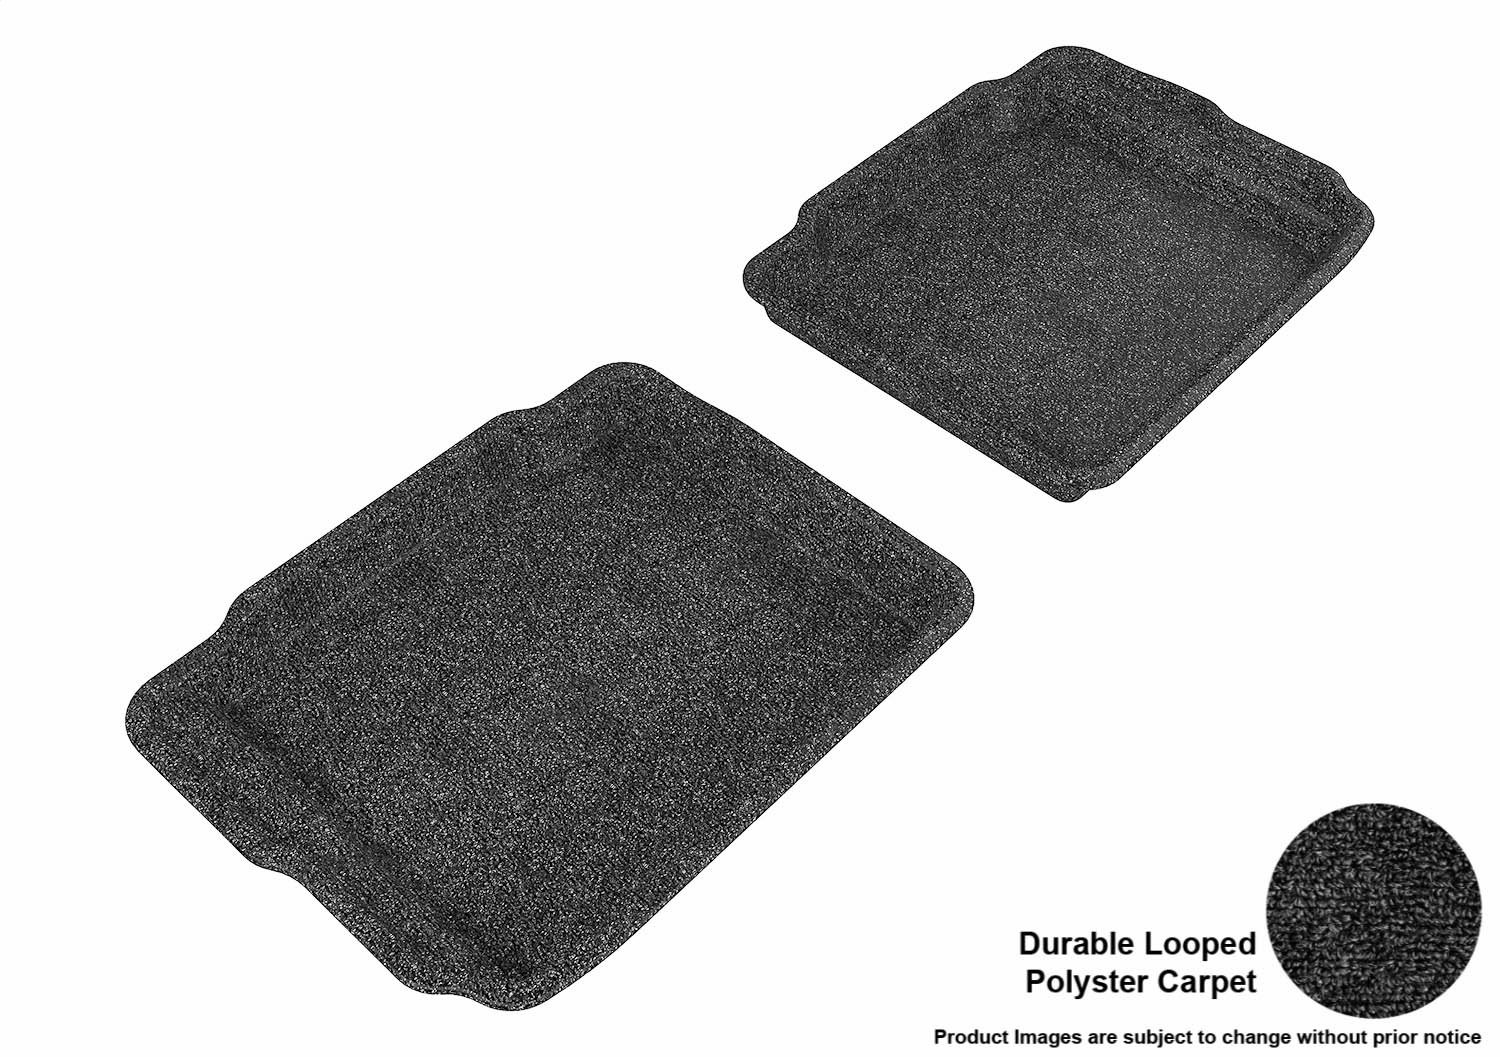 Classic Carpet 3D MAXpider Front Row Custom Fit Floor Mat for Select Ford Taurus Models Tan L1FR01812202